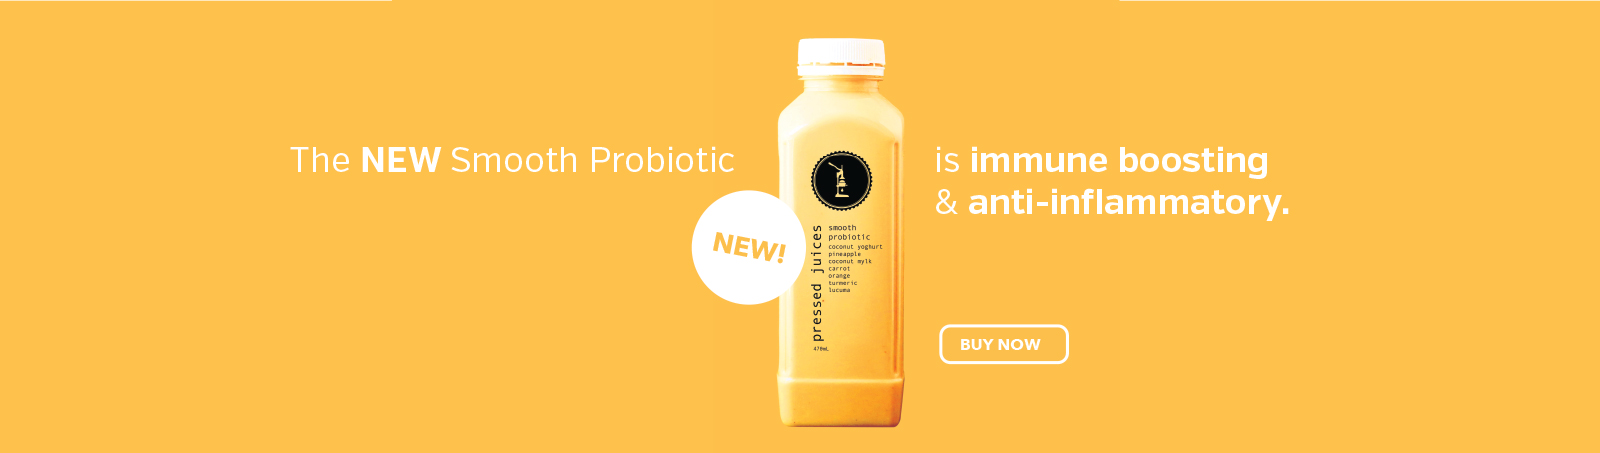 Smooth Probiotic